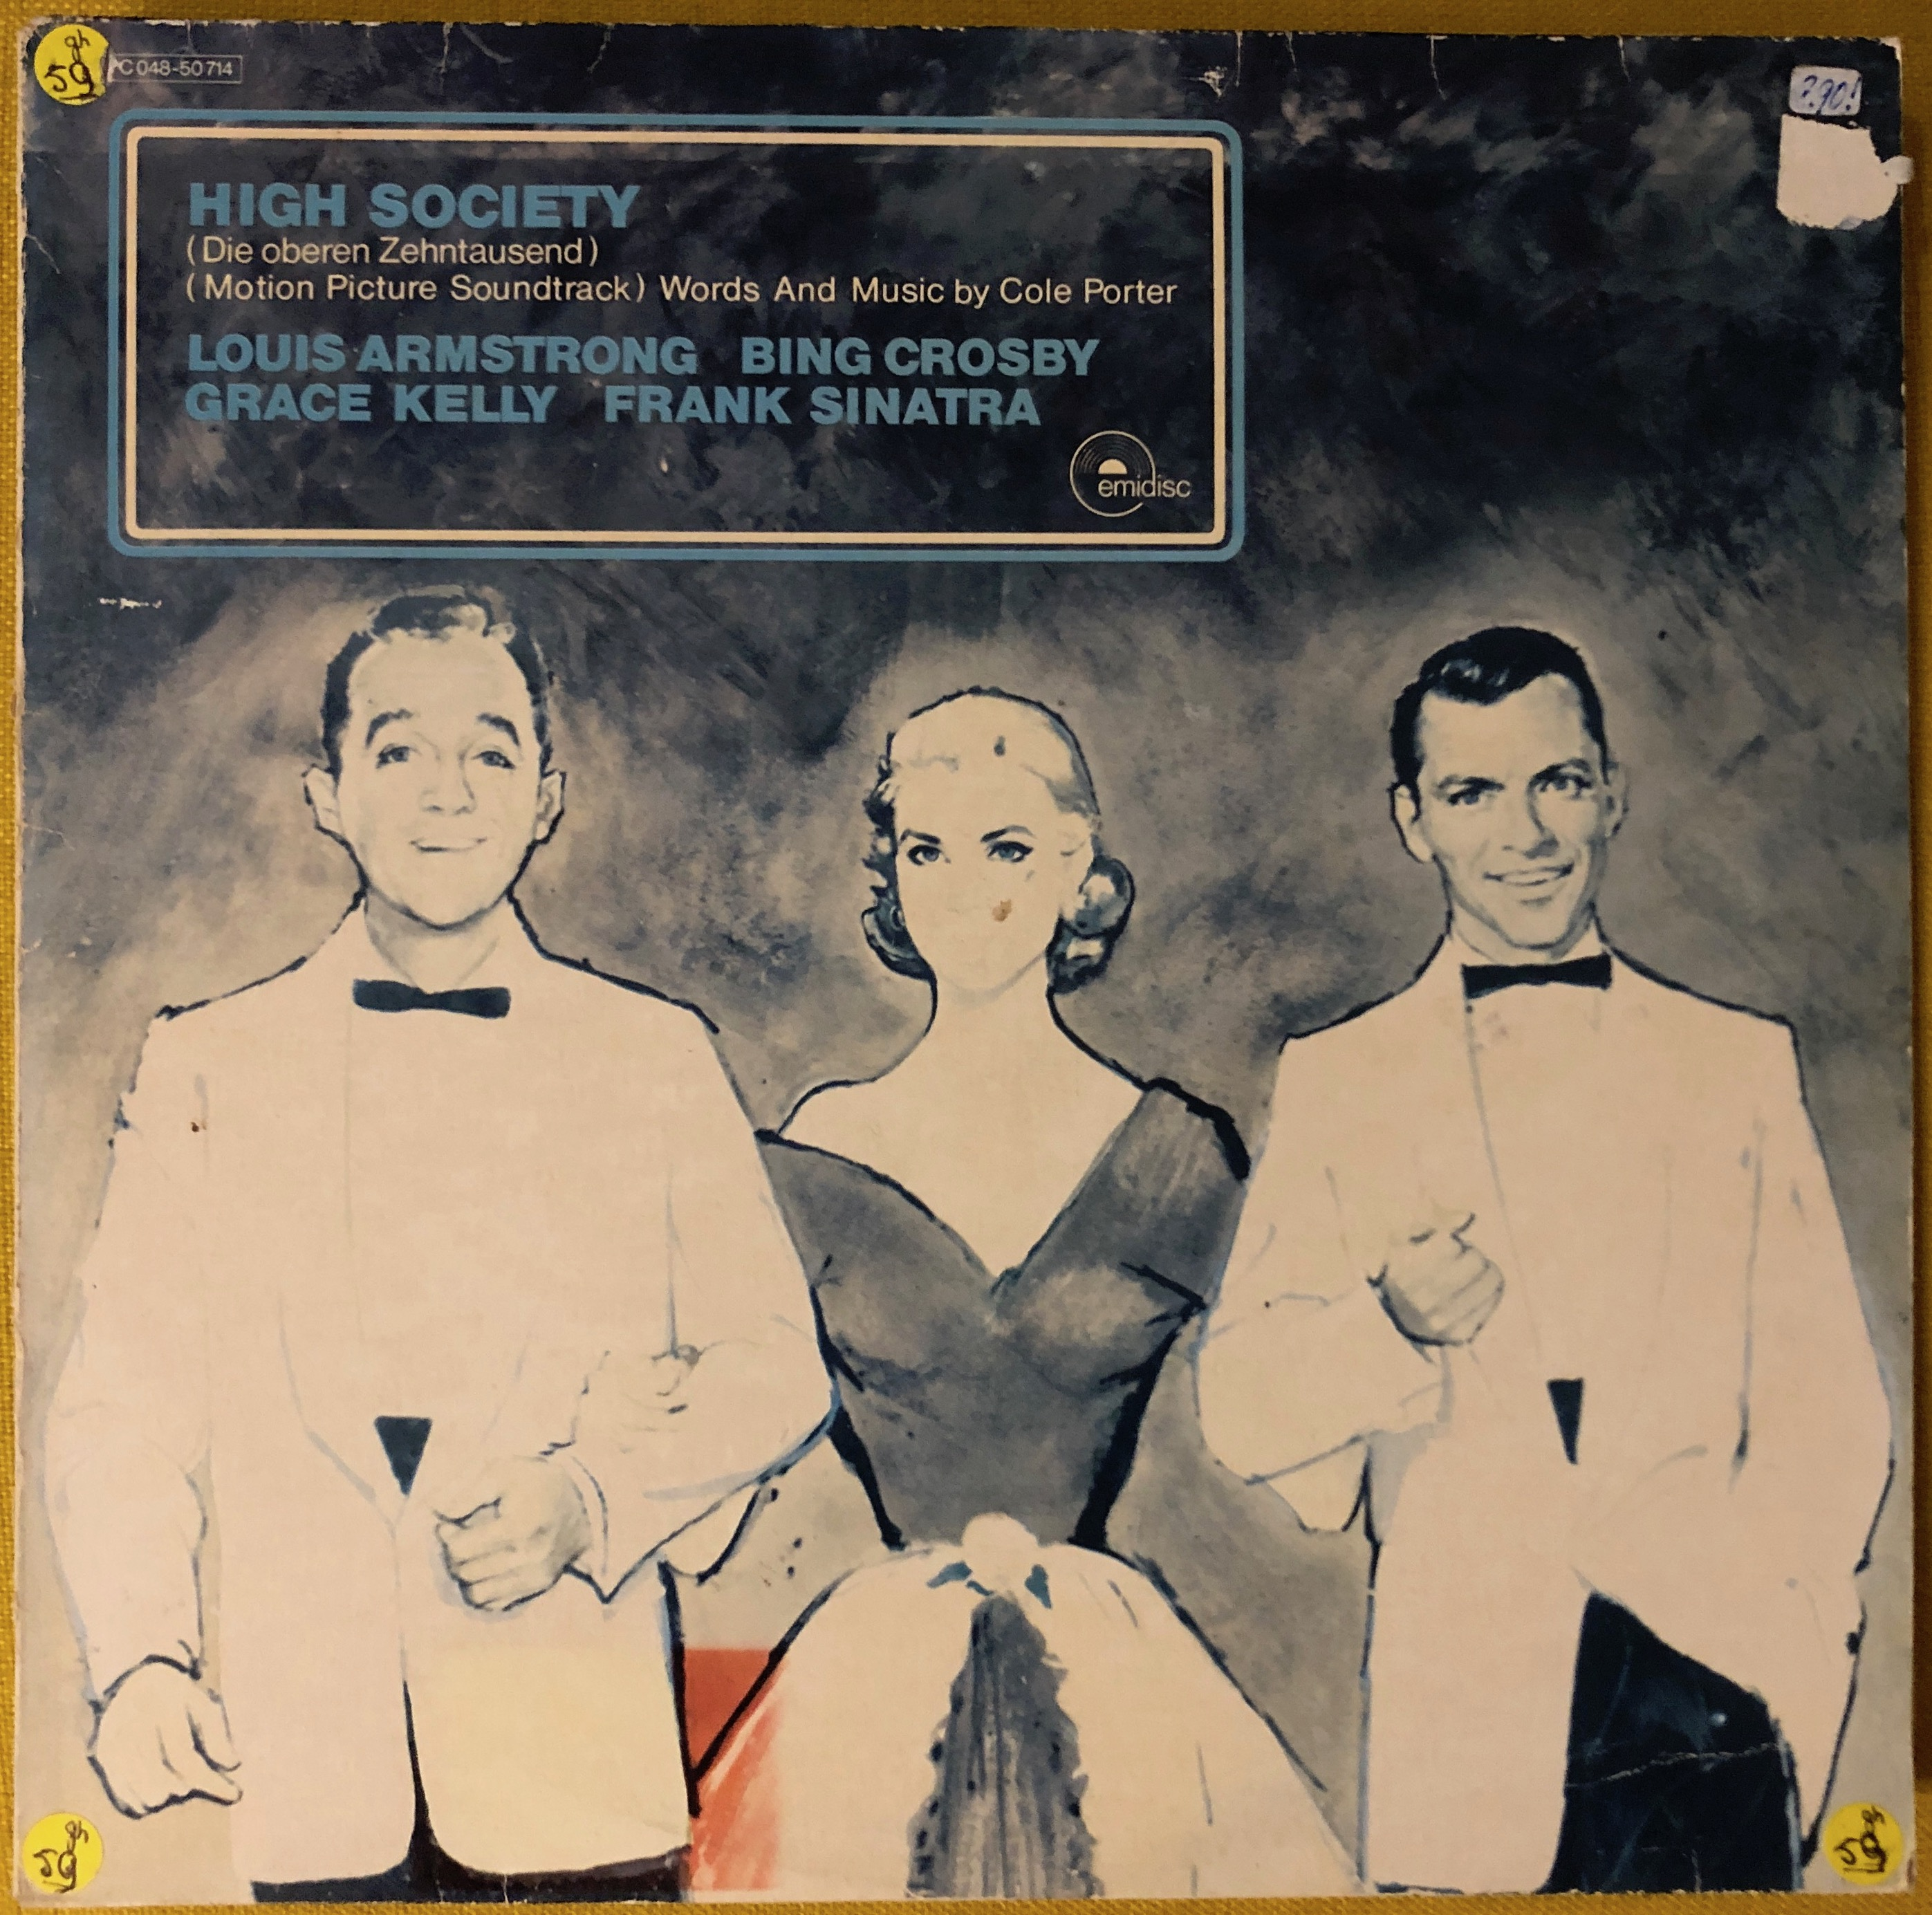 High Society (Die Oberen Zehntausend)(Motion Picture Soundtrack)